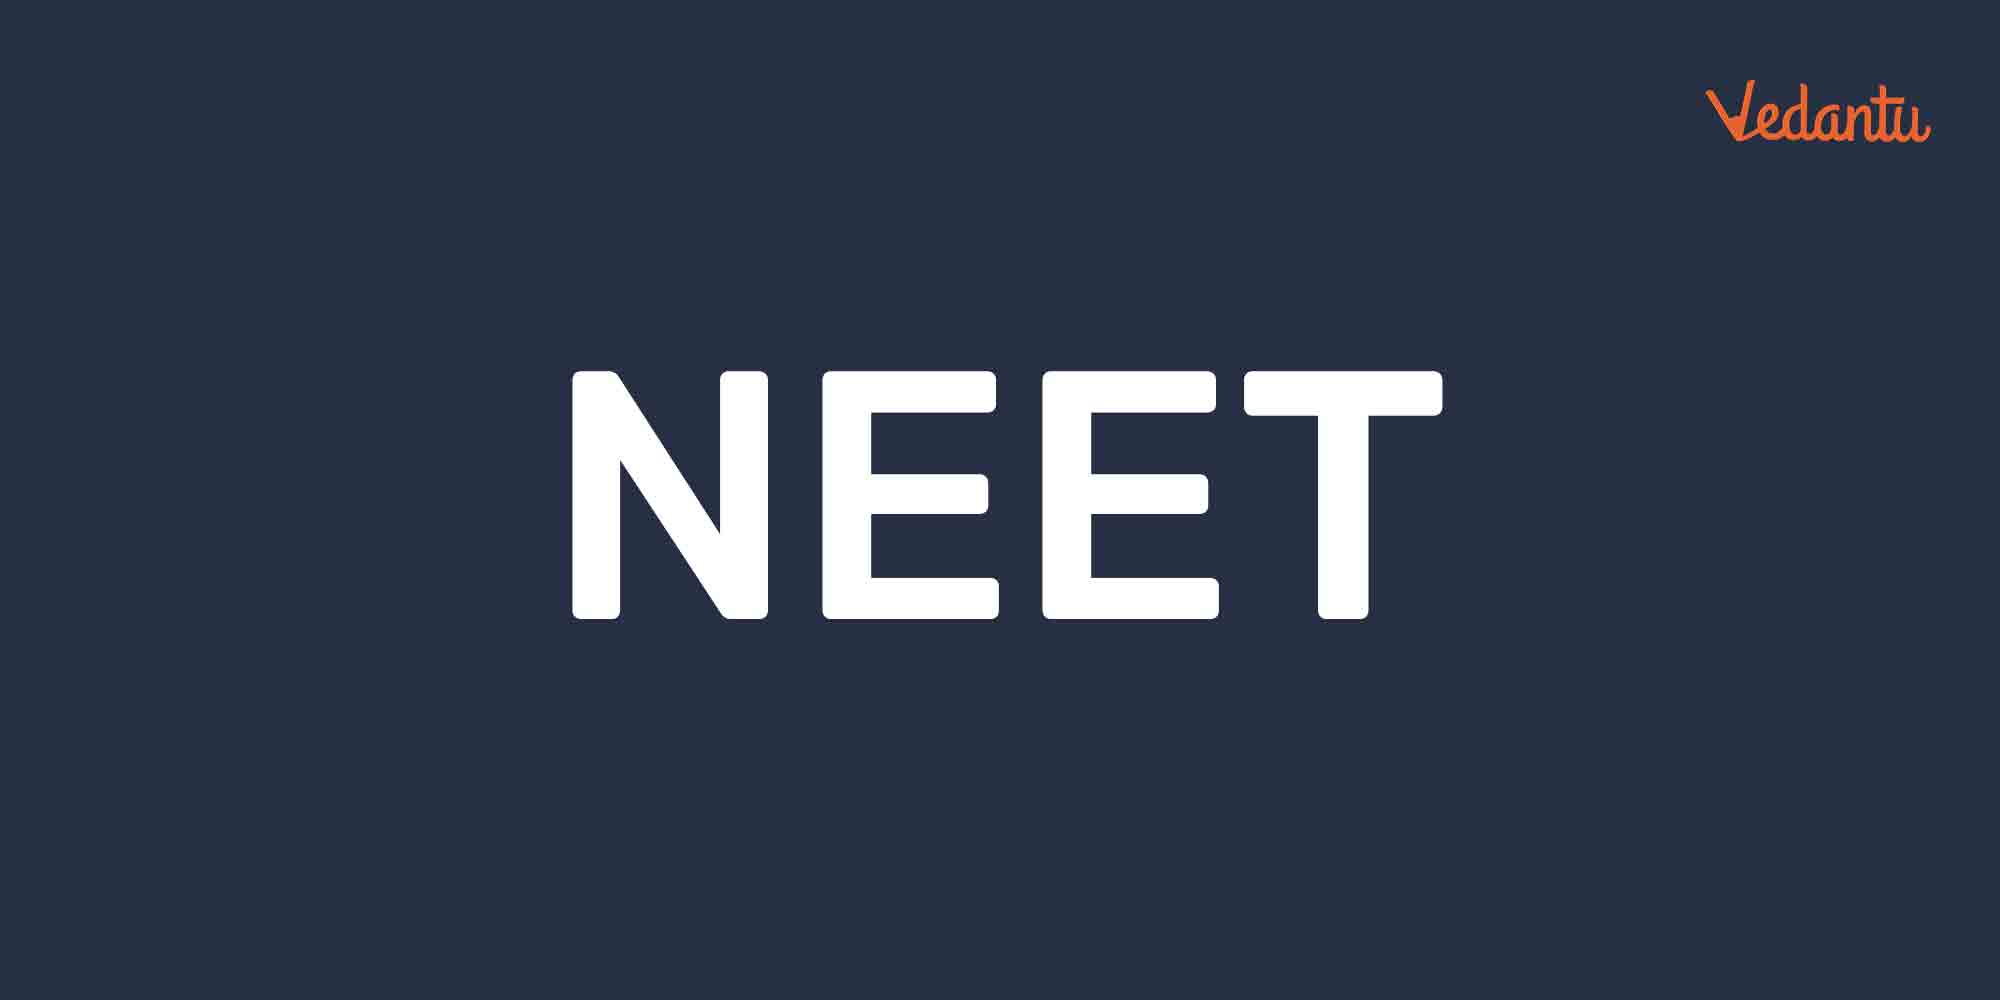 What To Do After NEET?